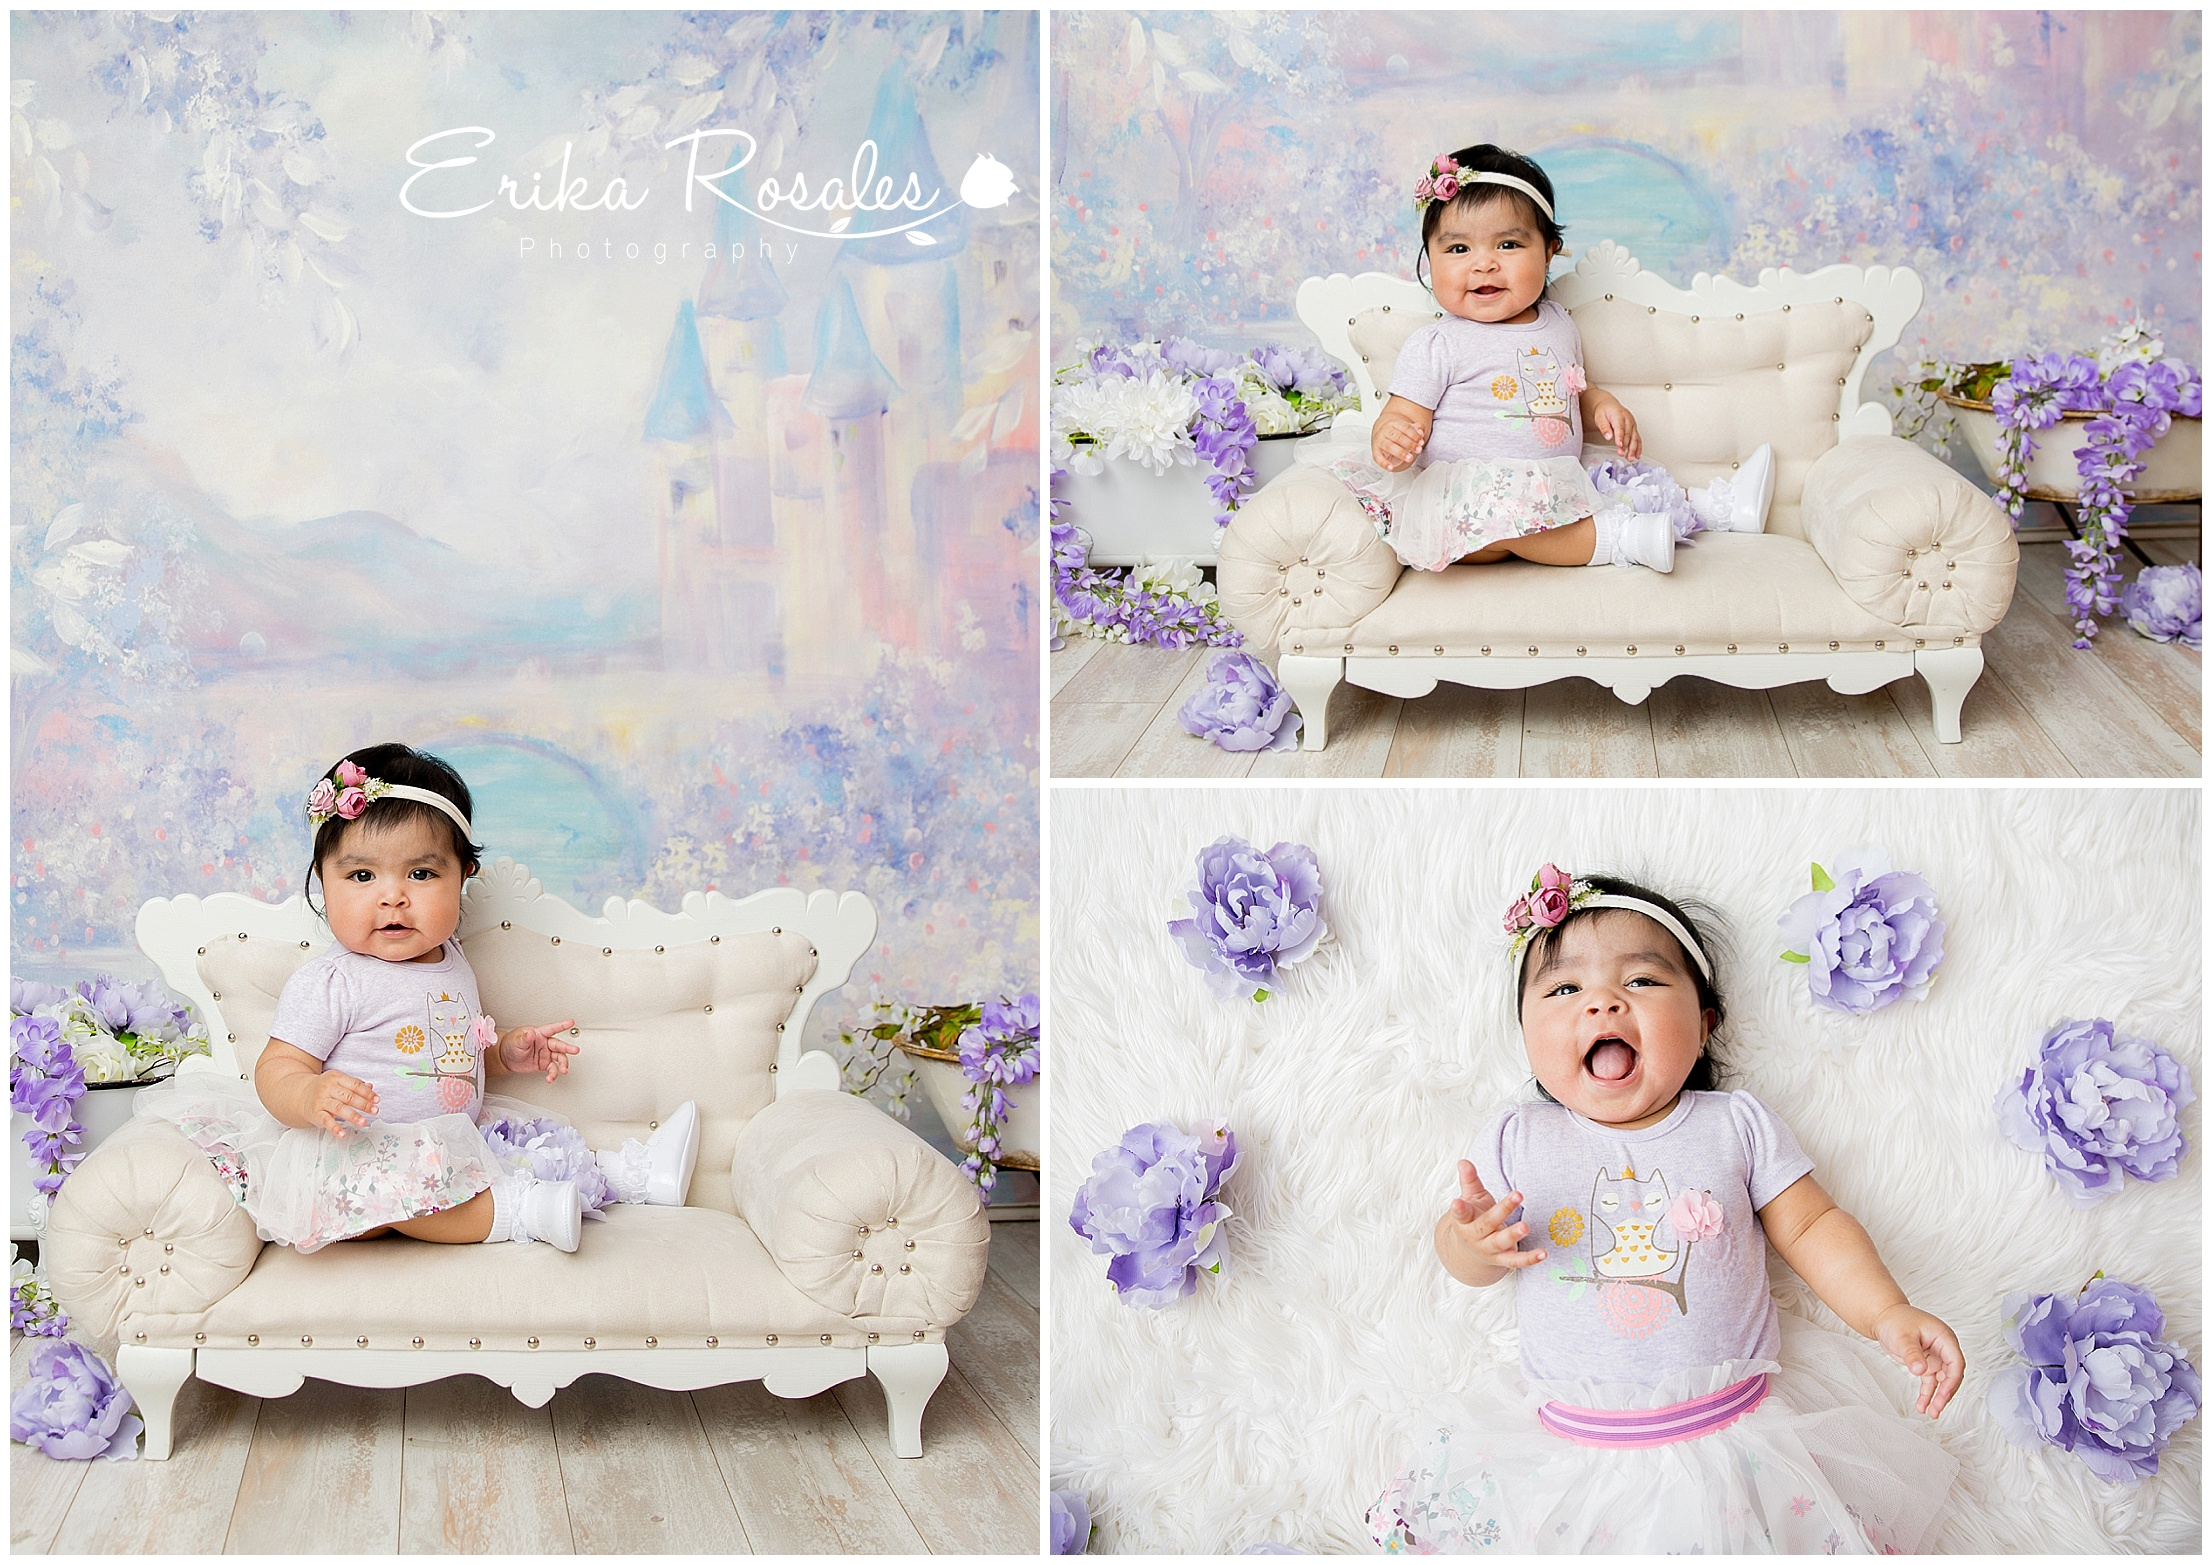 This entry was posted in milestone and tagged 6 month old baby girl baby girl 6 month old baby girl photo session baby girl studio photo session